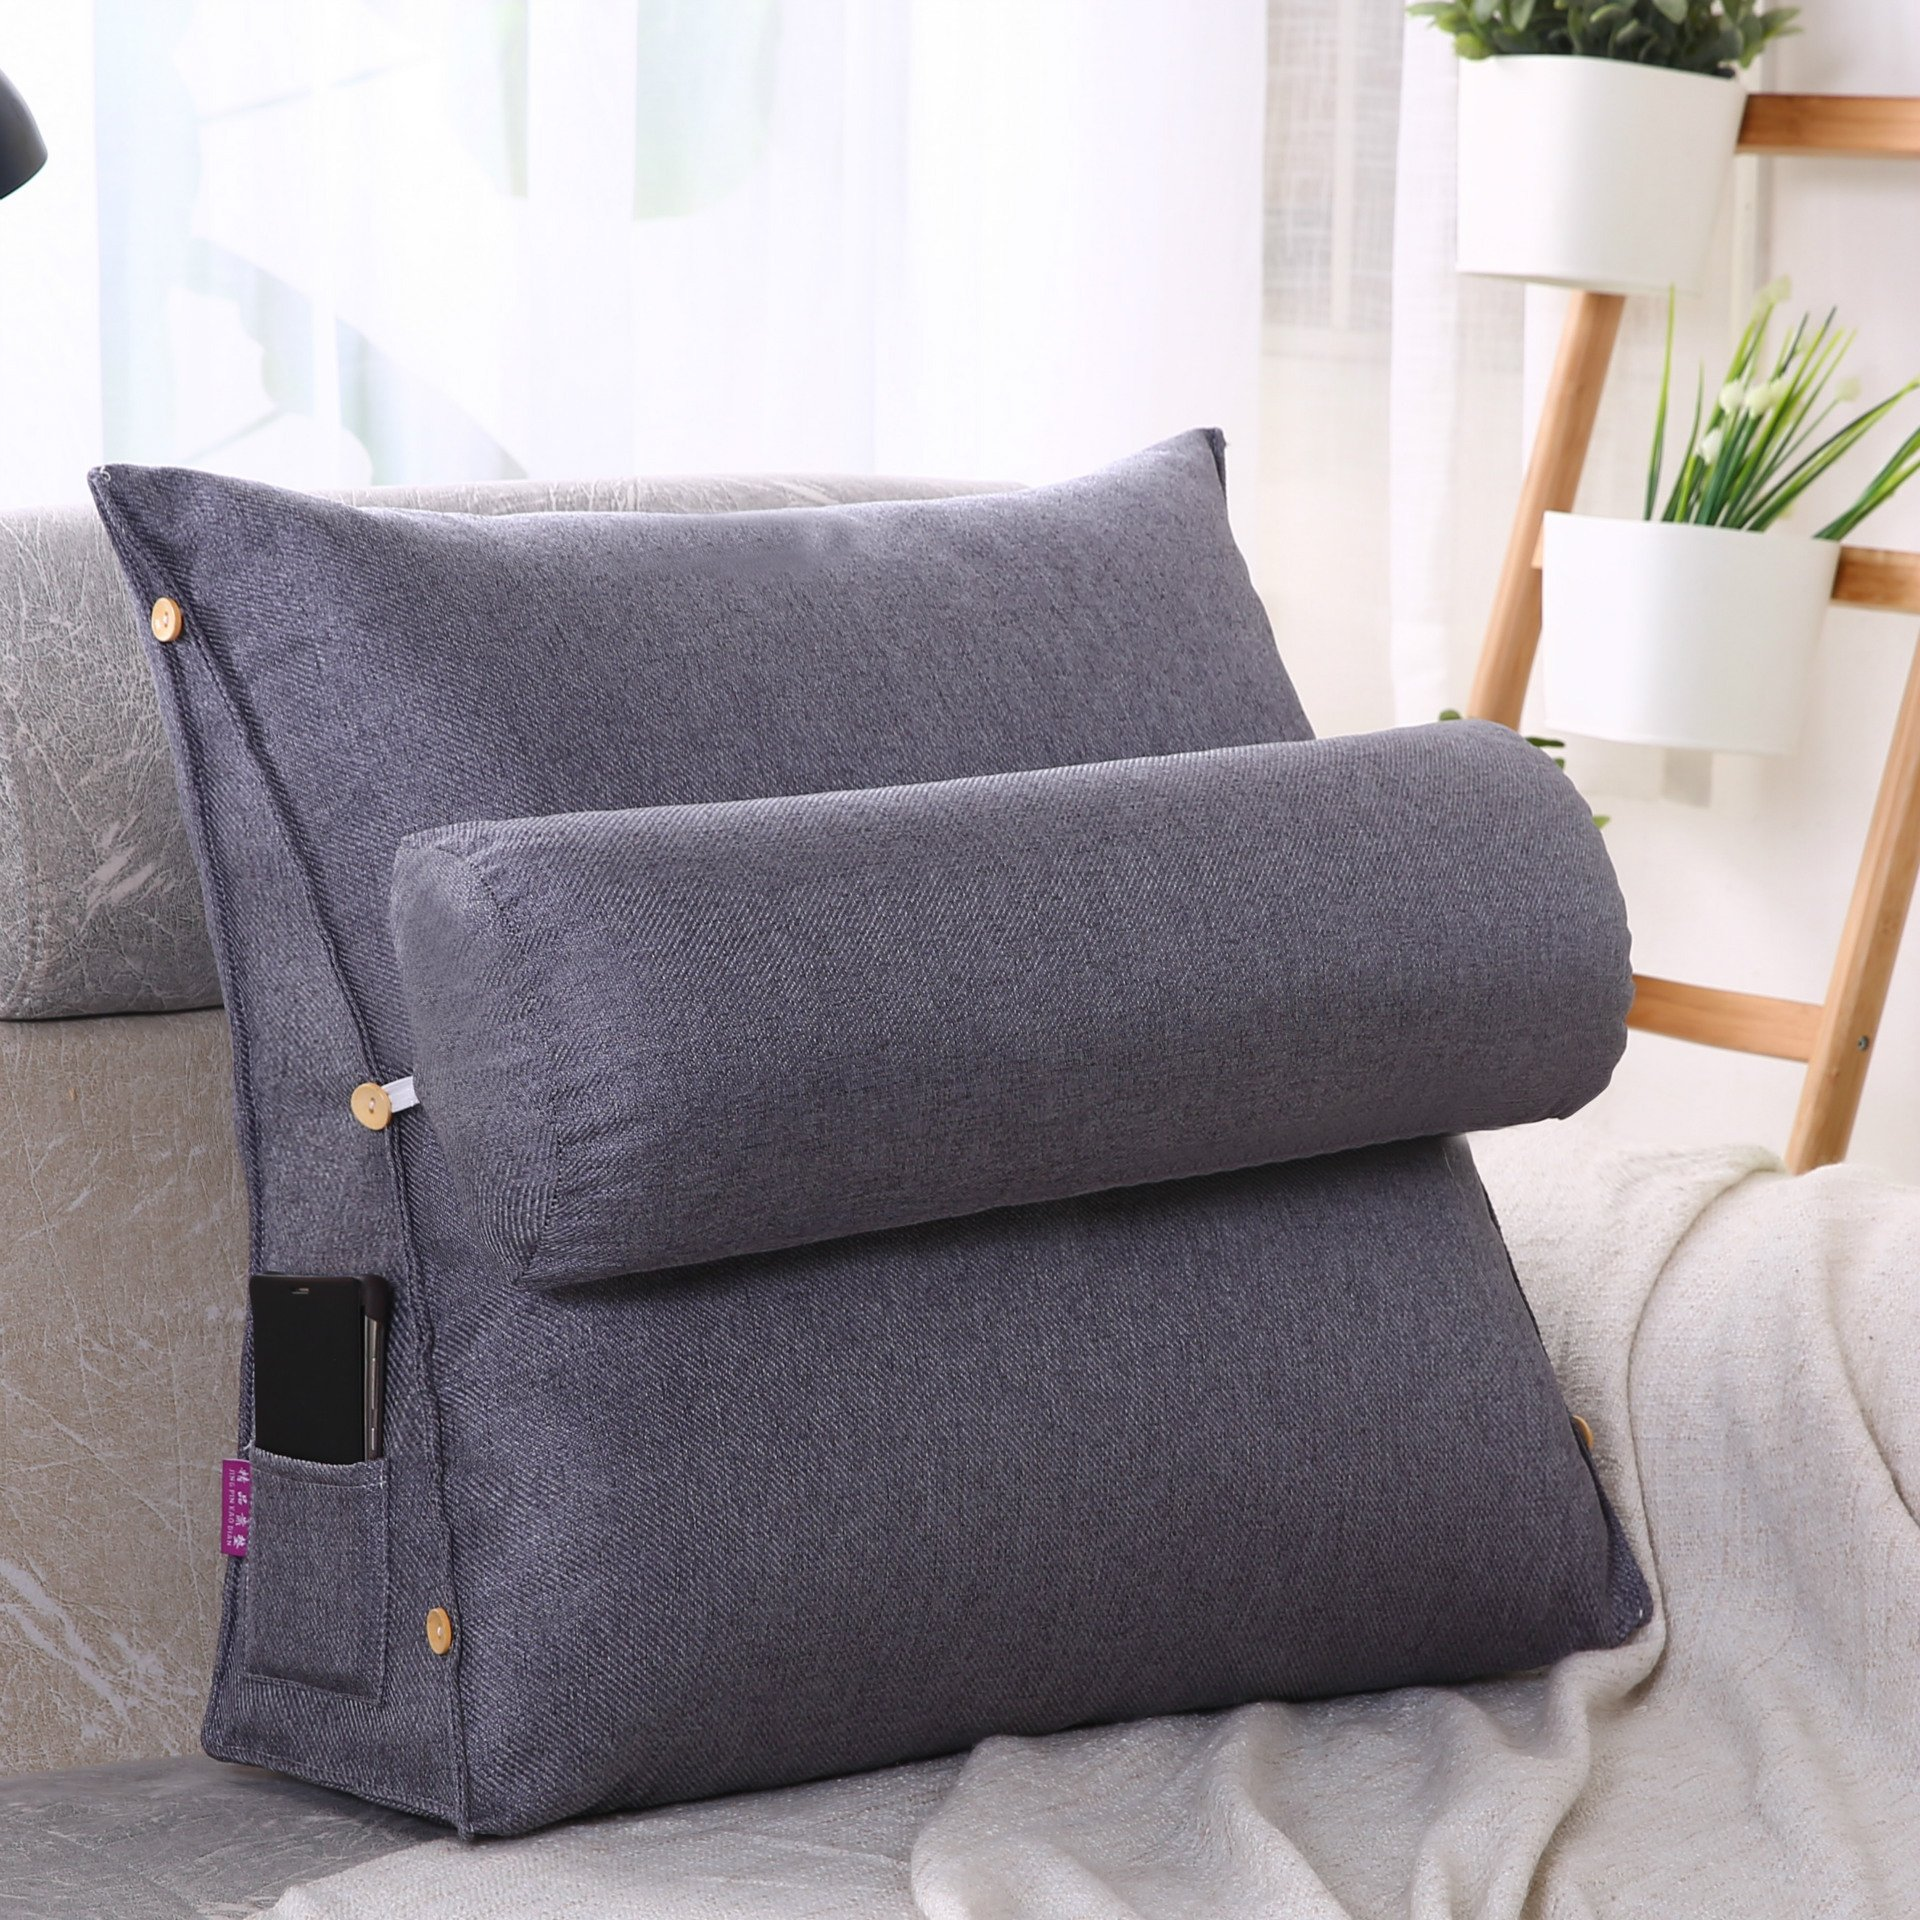 LUOTIANLANG Office sofa cushion pillow waist pillow for pregnant women Home Furnishing ornaments triangle comfortable cushion,Deep ash,50x200x20cm